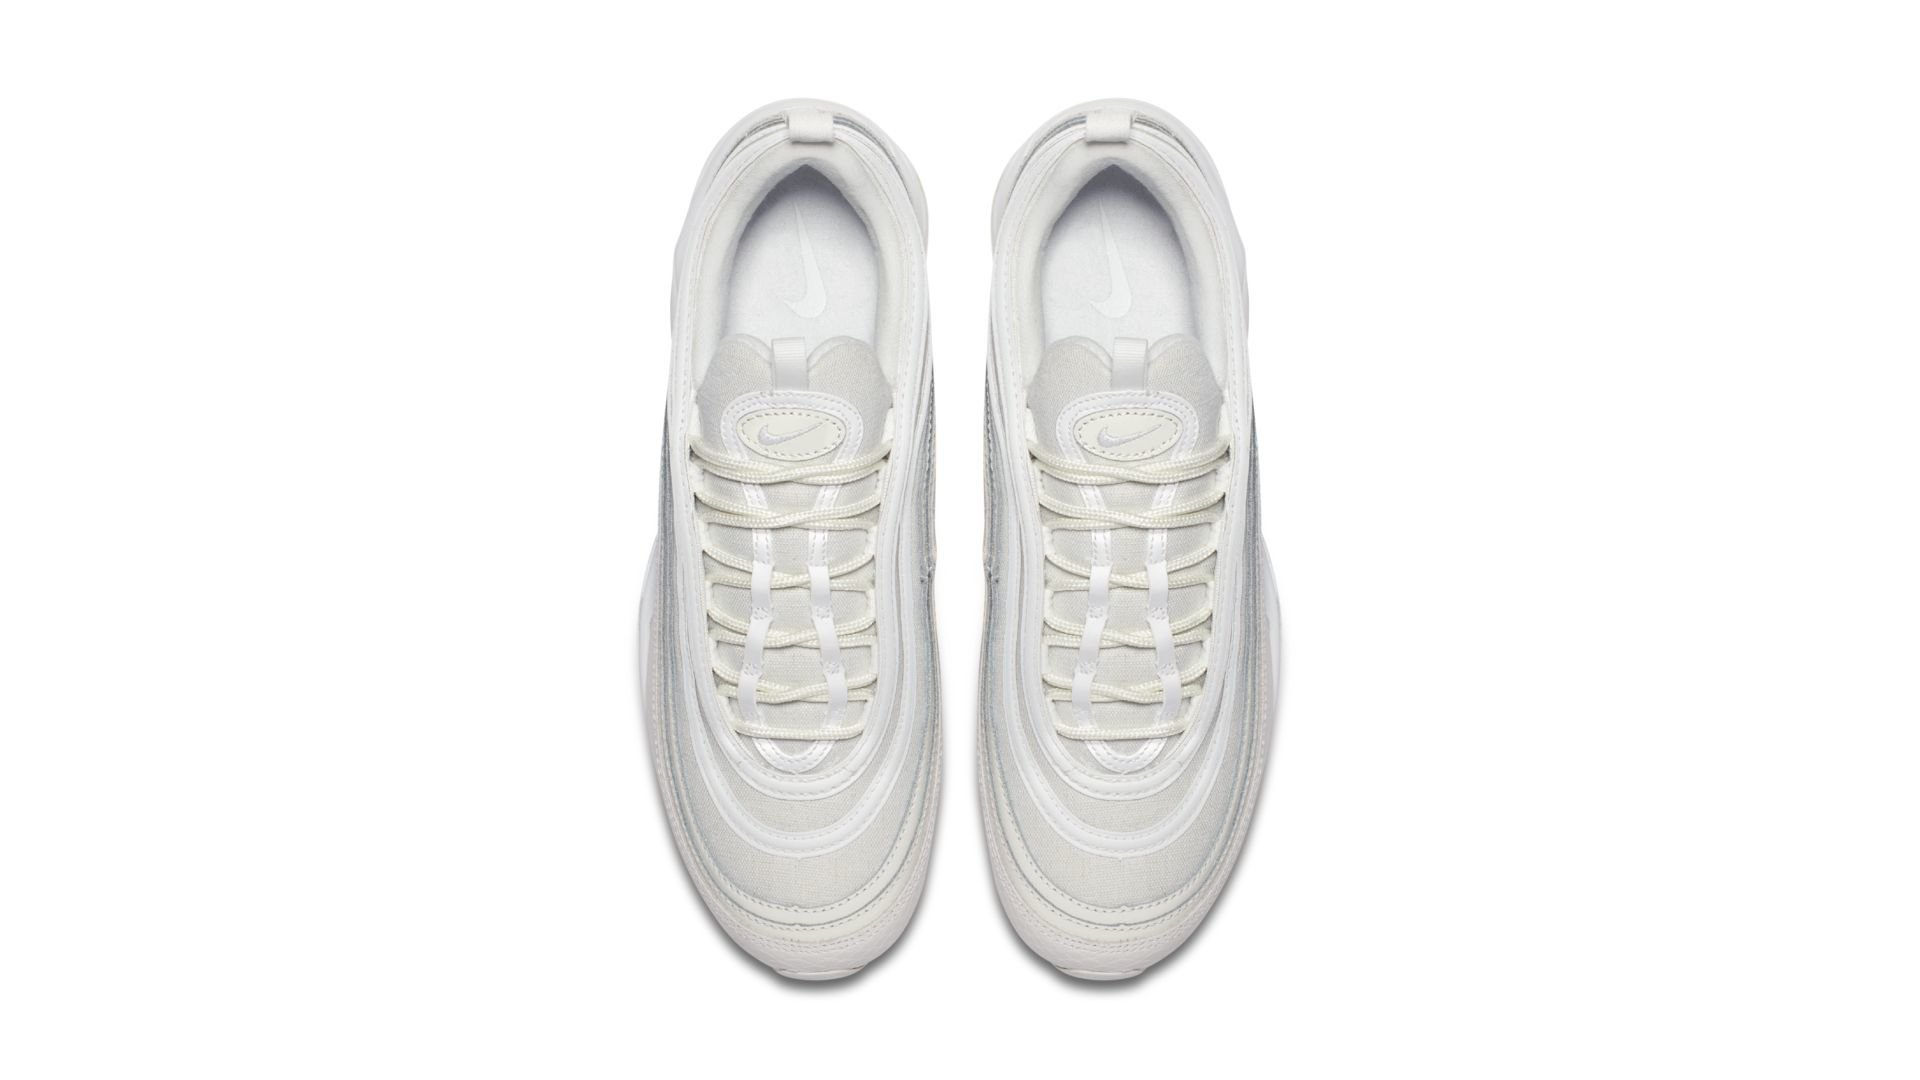 Nike Air Max 97 Summit White (921826-100)